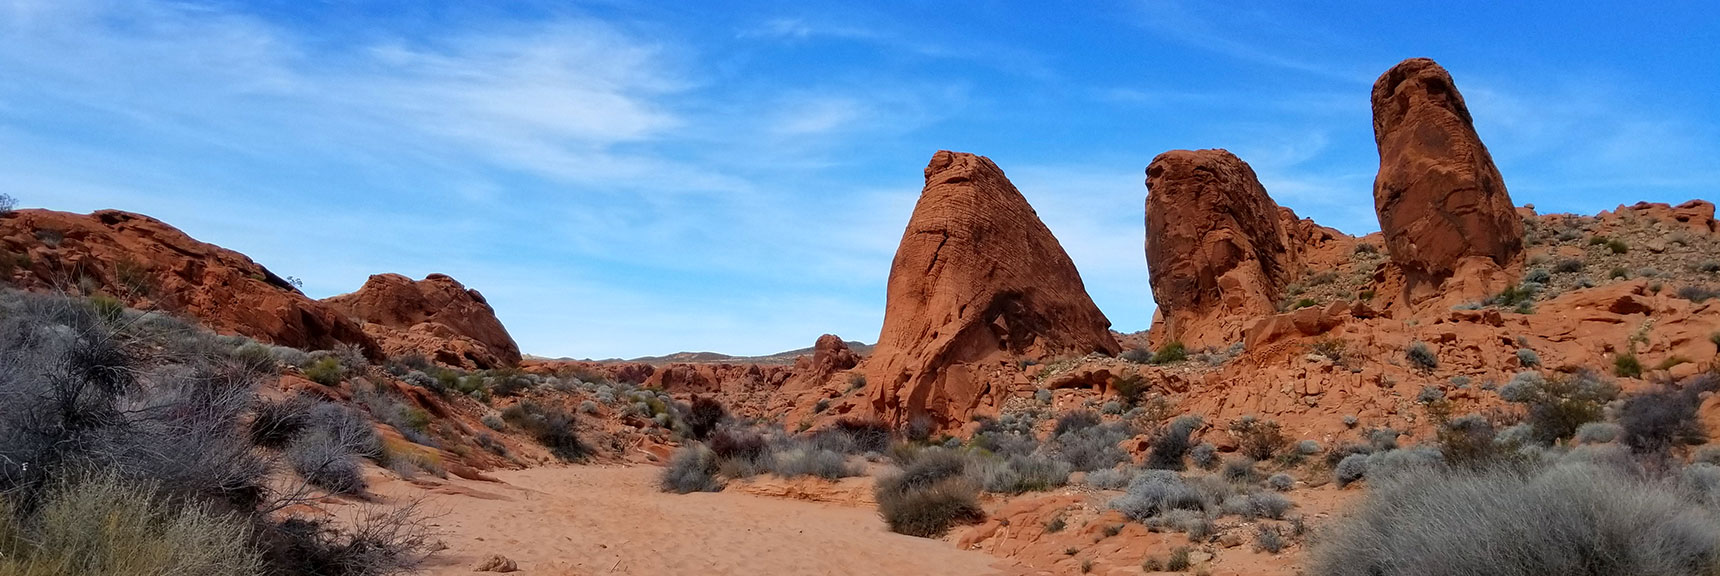 Three Pinnacles on Natural Arches Trail, Valley of Fire State Park, Nevada